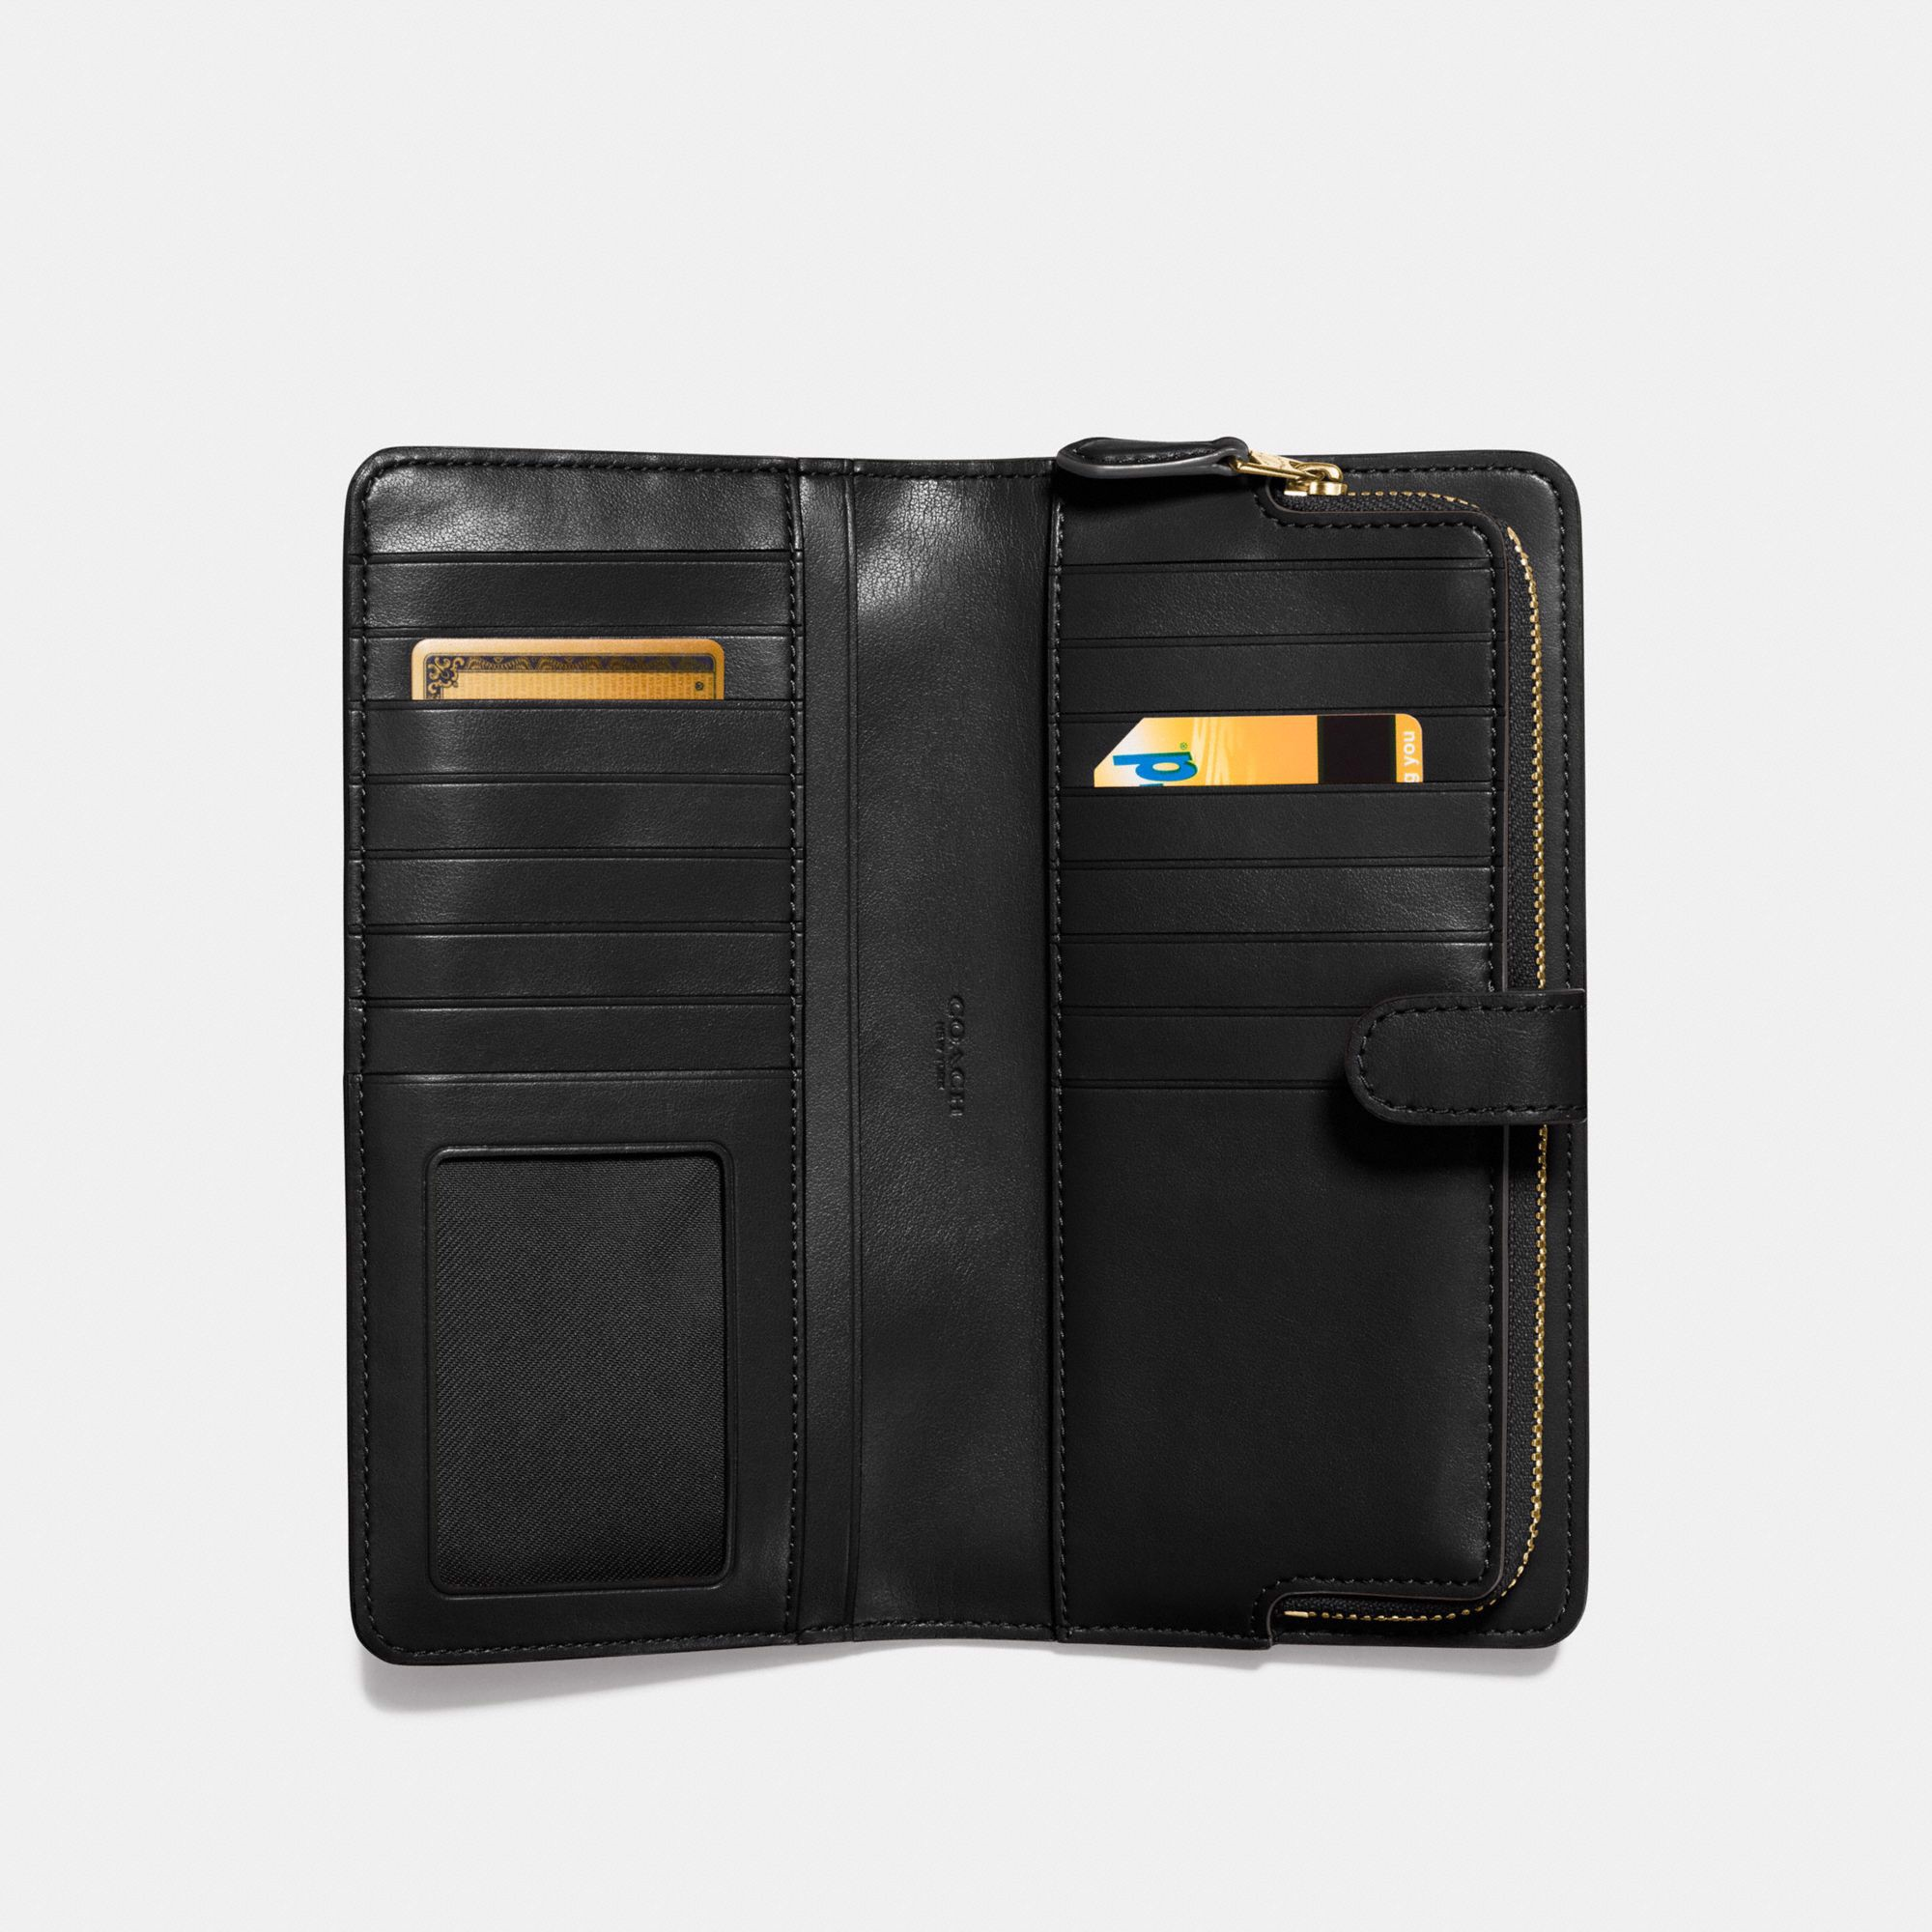 Coach Skinny Wallet - Black/Light Gold